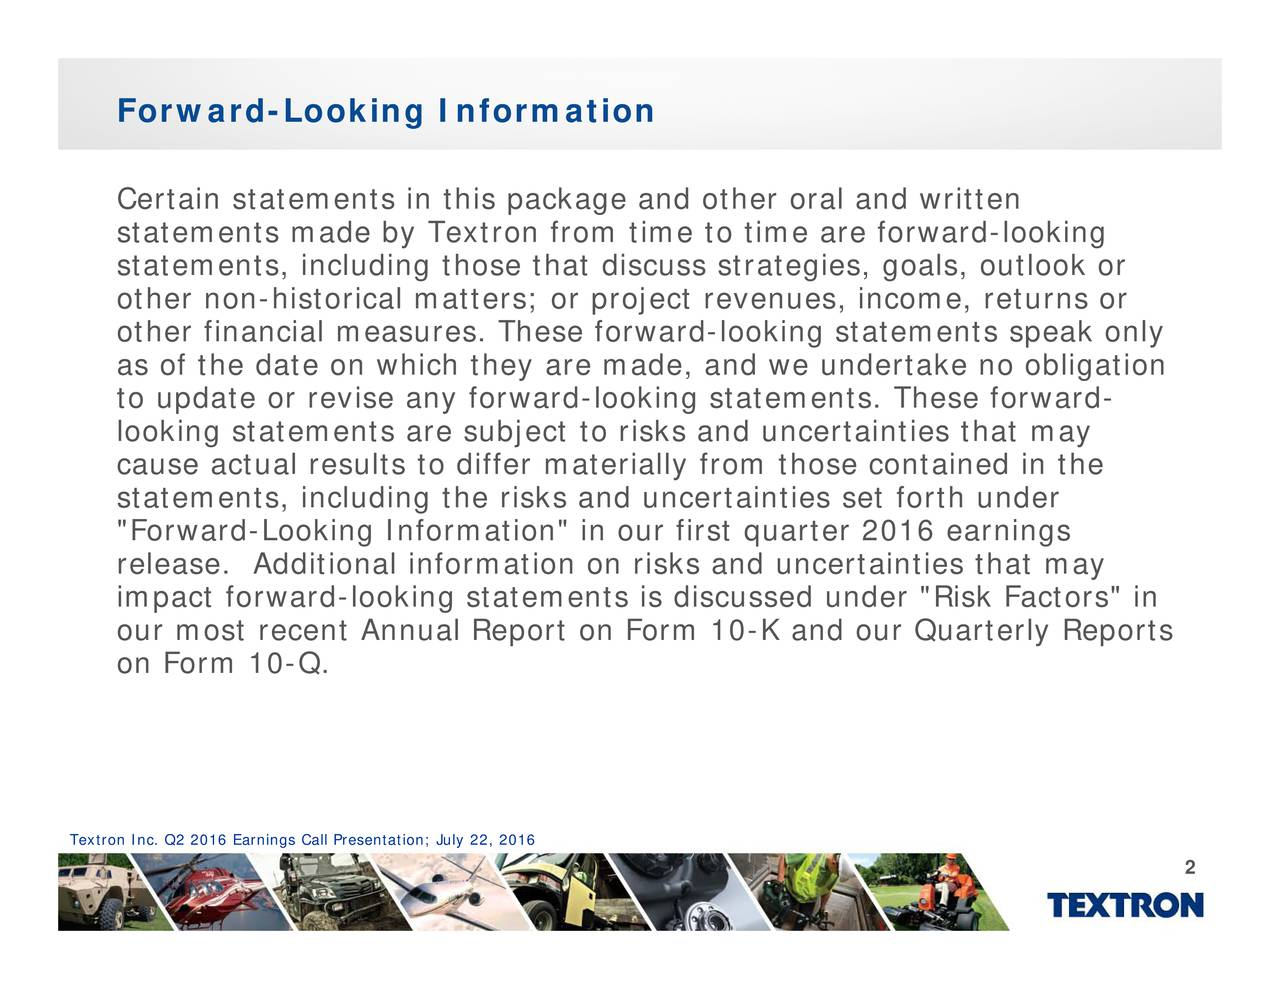 risks and uncertainties that may made, and we undertake no obligation Forw aertstothktemtentscaiaterteansa.outreosautre.oanionaollwnmao Textron Inc. Q2 2016 Earnings Call Presentation; July 22, 2016